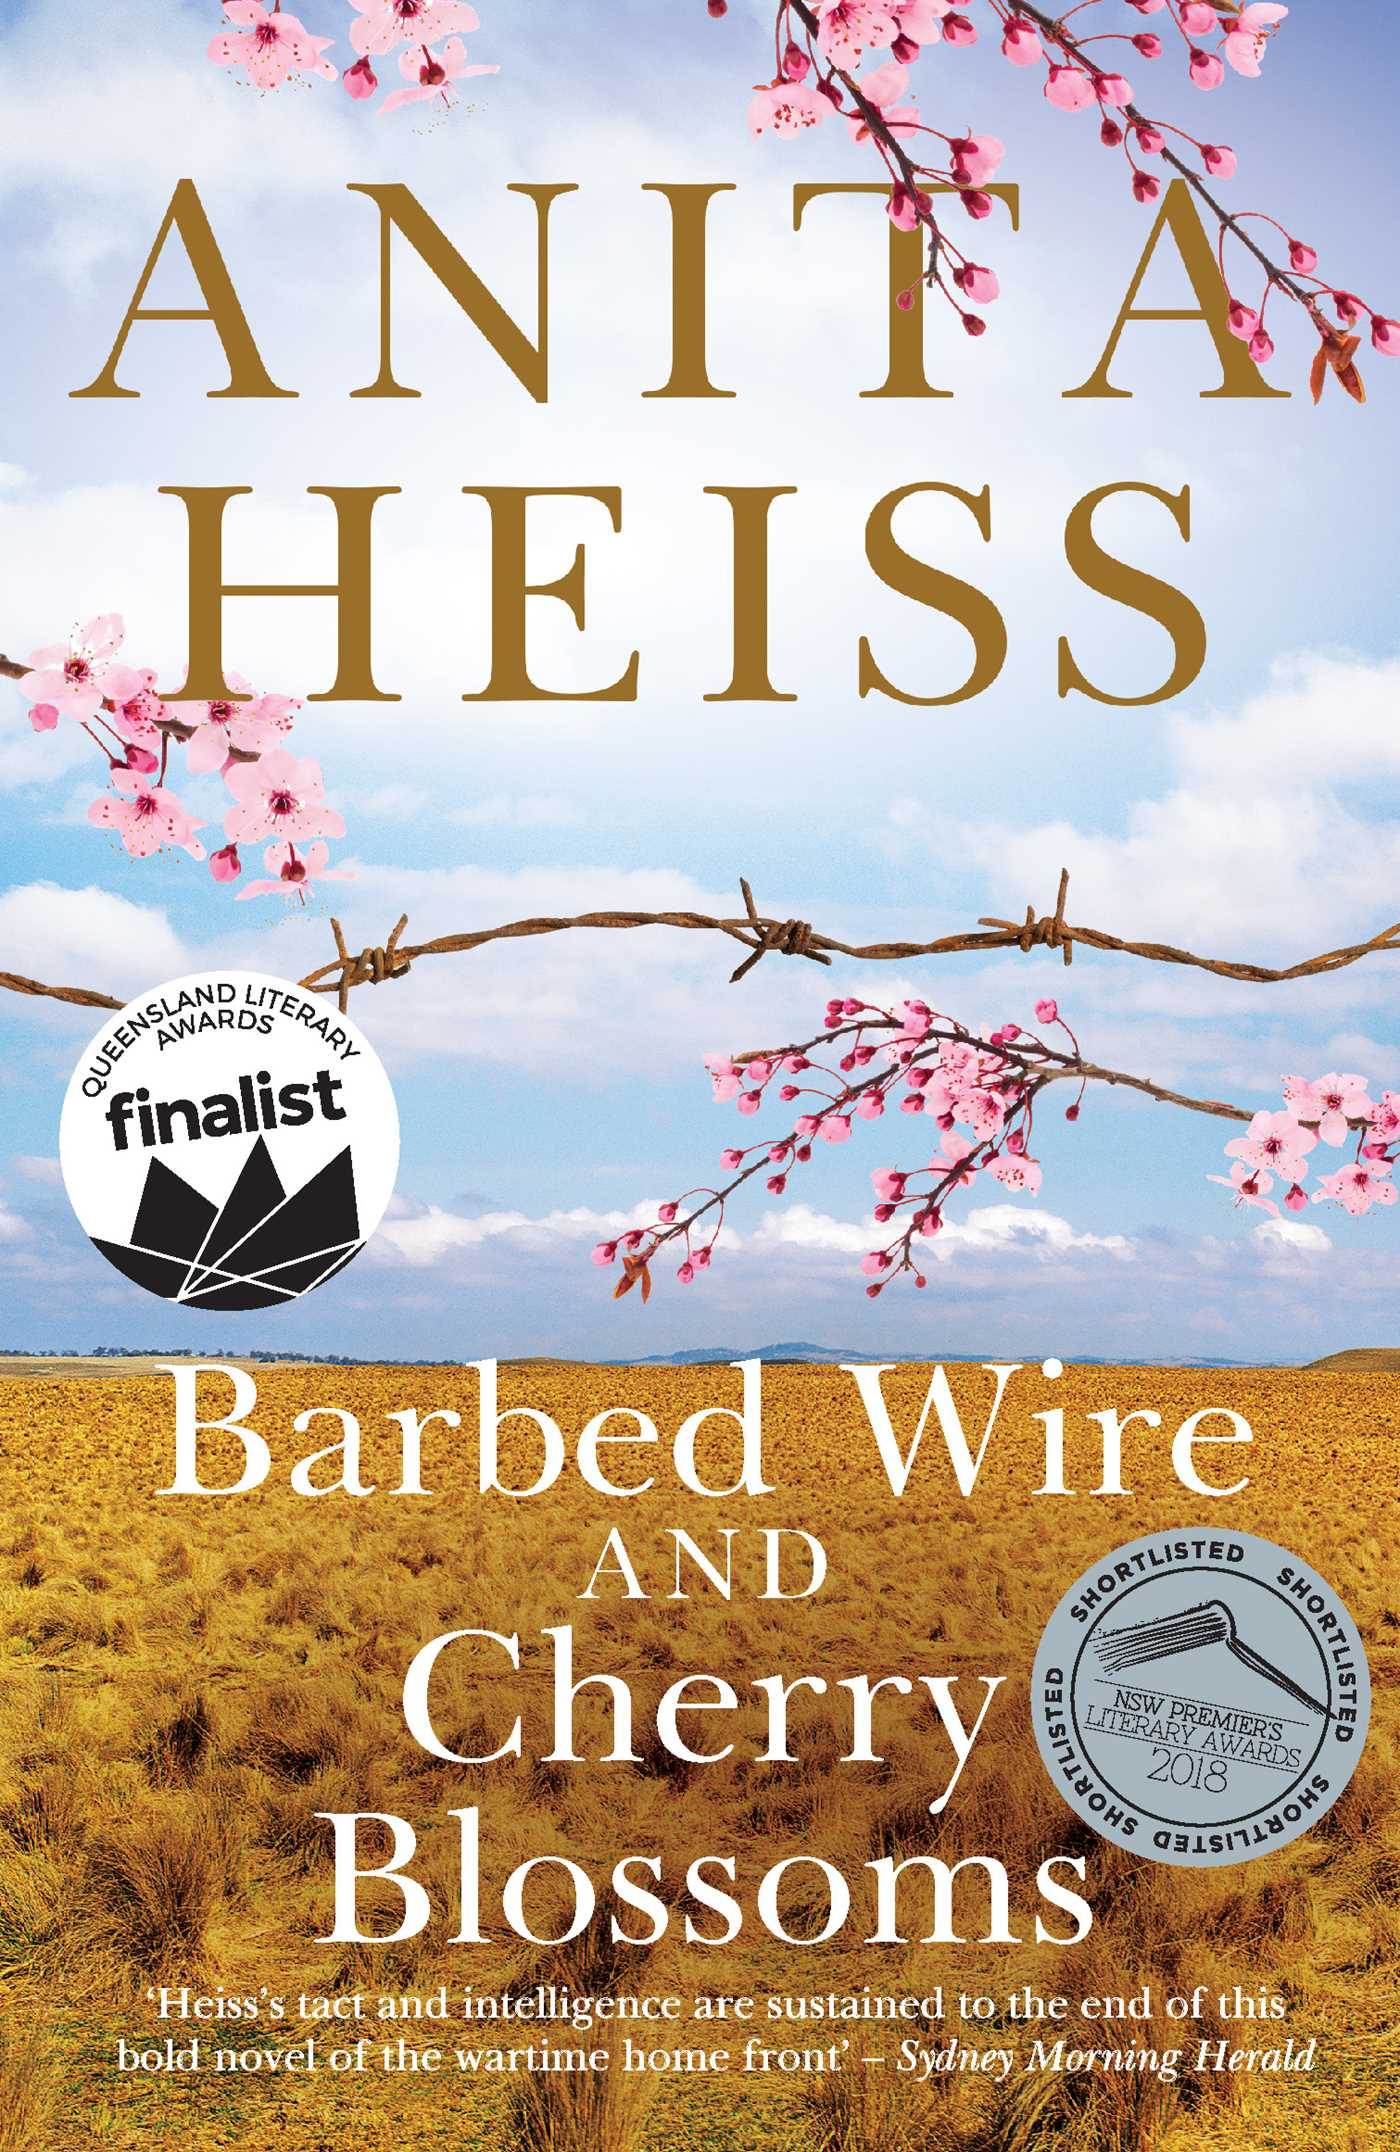 Barbed Wire and Cherry Blossoms | Book by Anita Heiss | Official ...